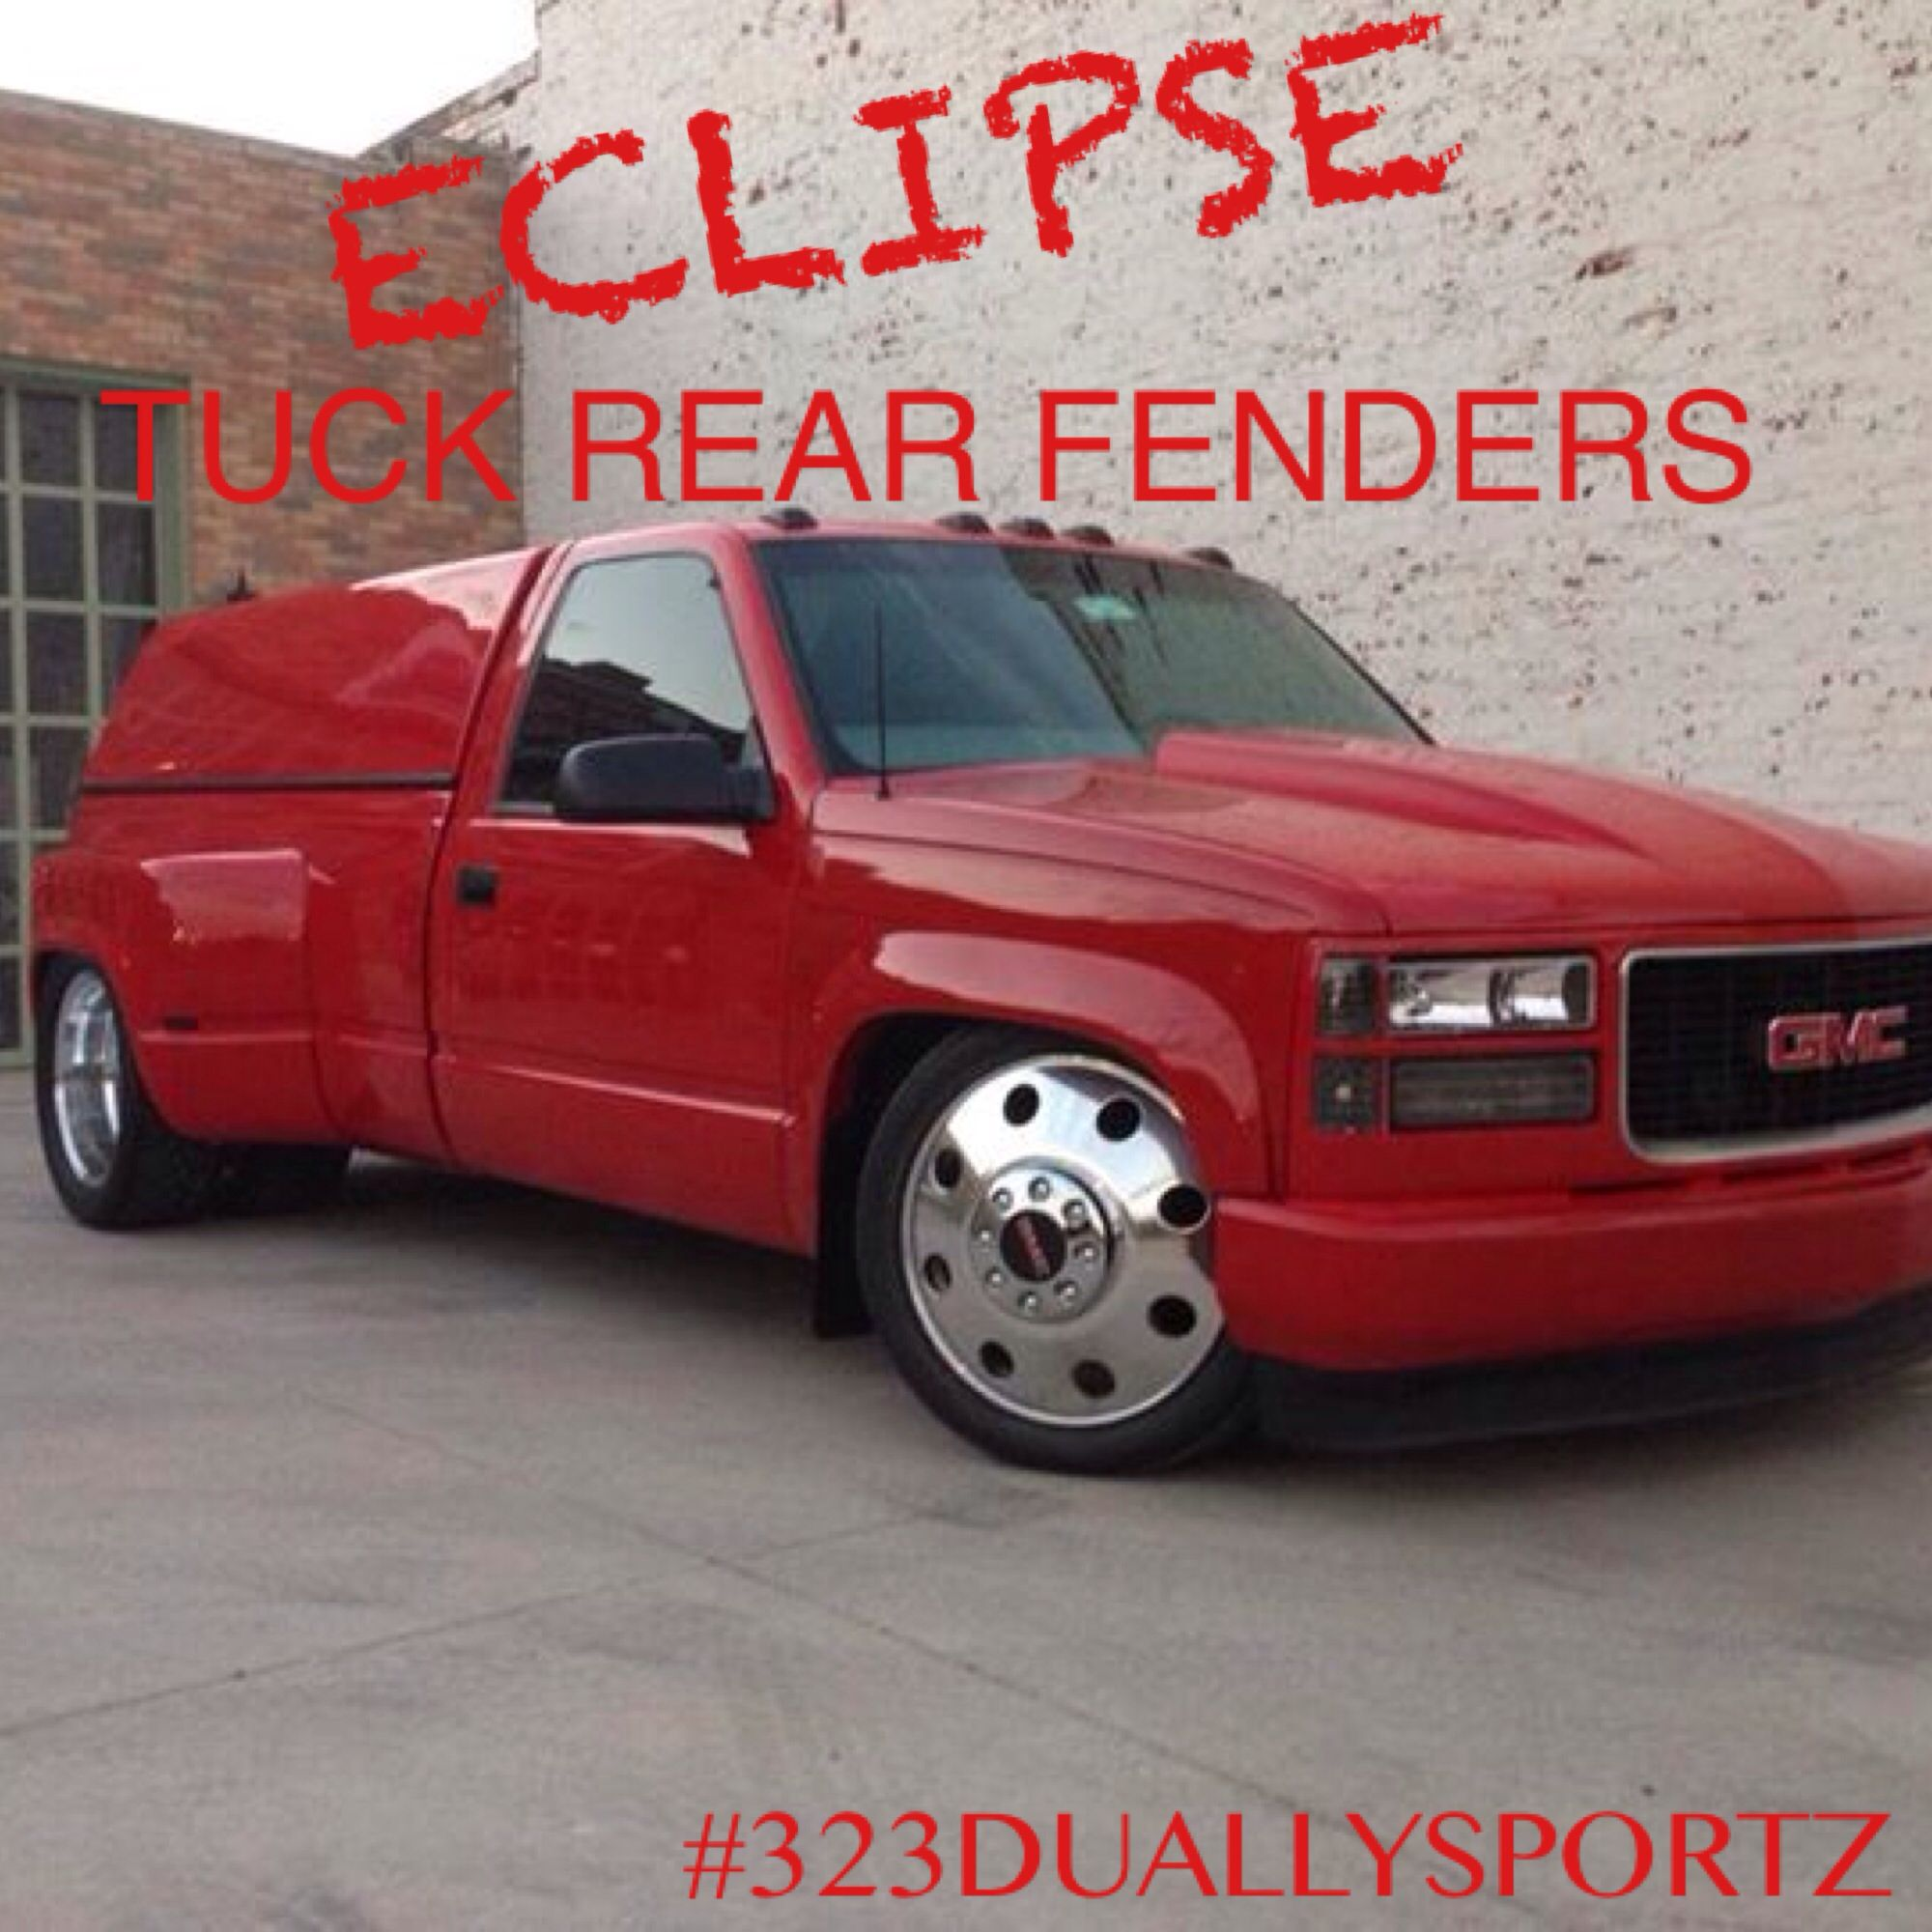 Eclipse Tuck Rear Fenders Sold By 323 Duallysportz Order Yours Today 323 382 5597 Things To Sell Dually Trucks Fender